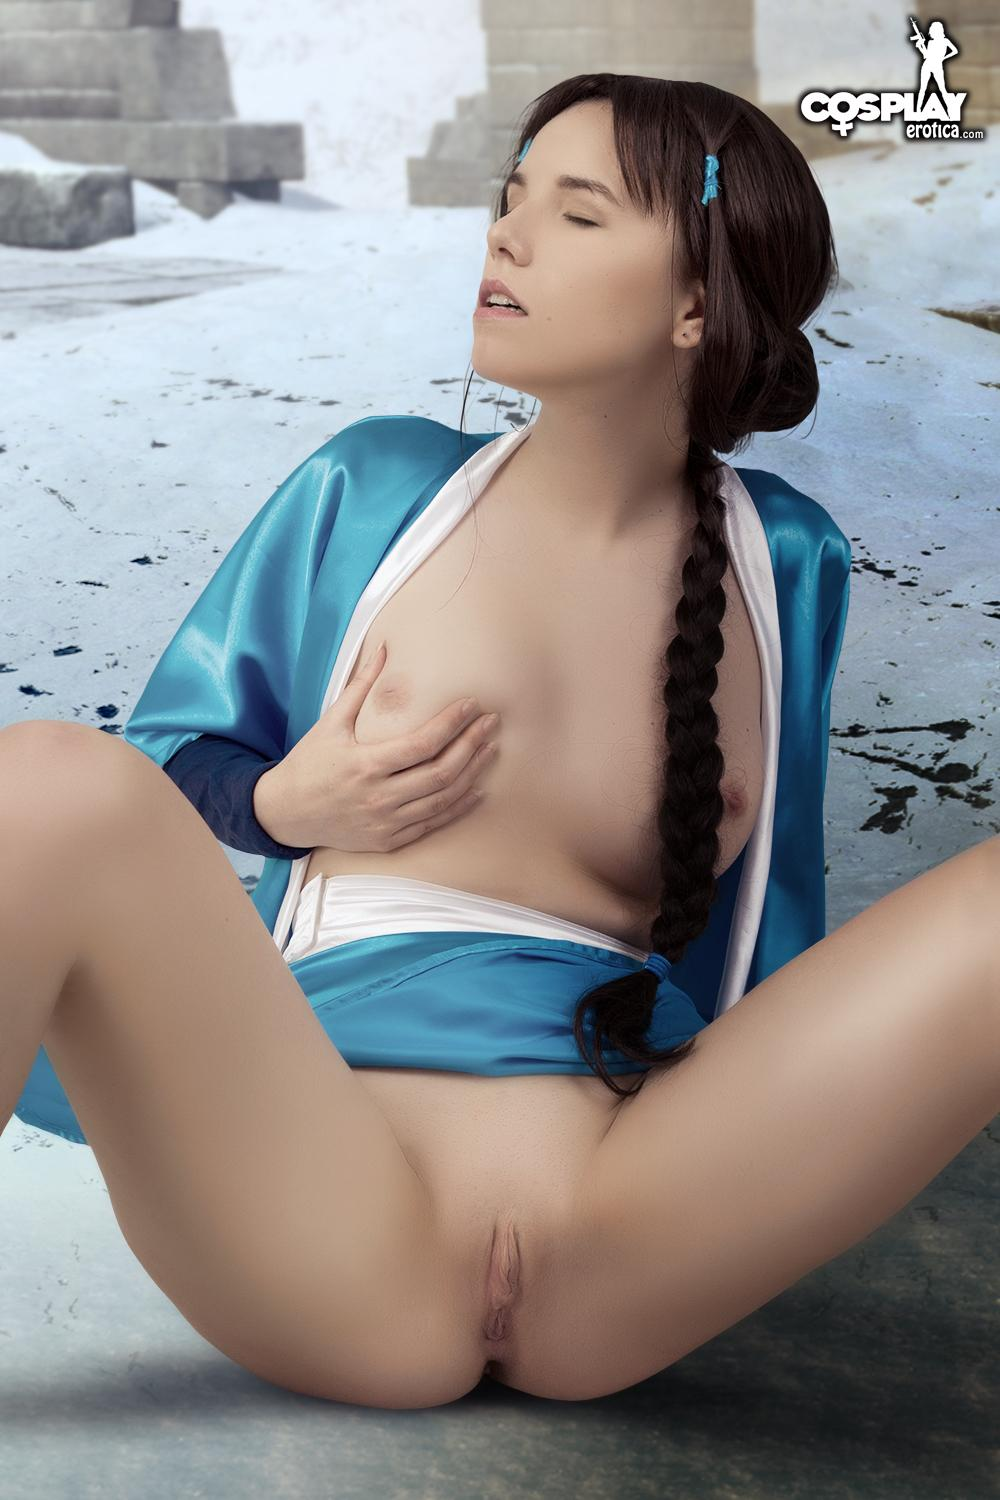 avatar:the last airbender nude cosplay